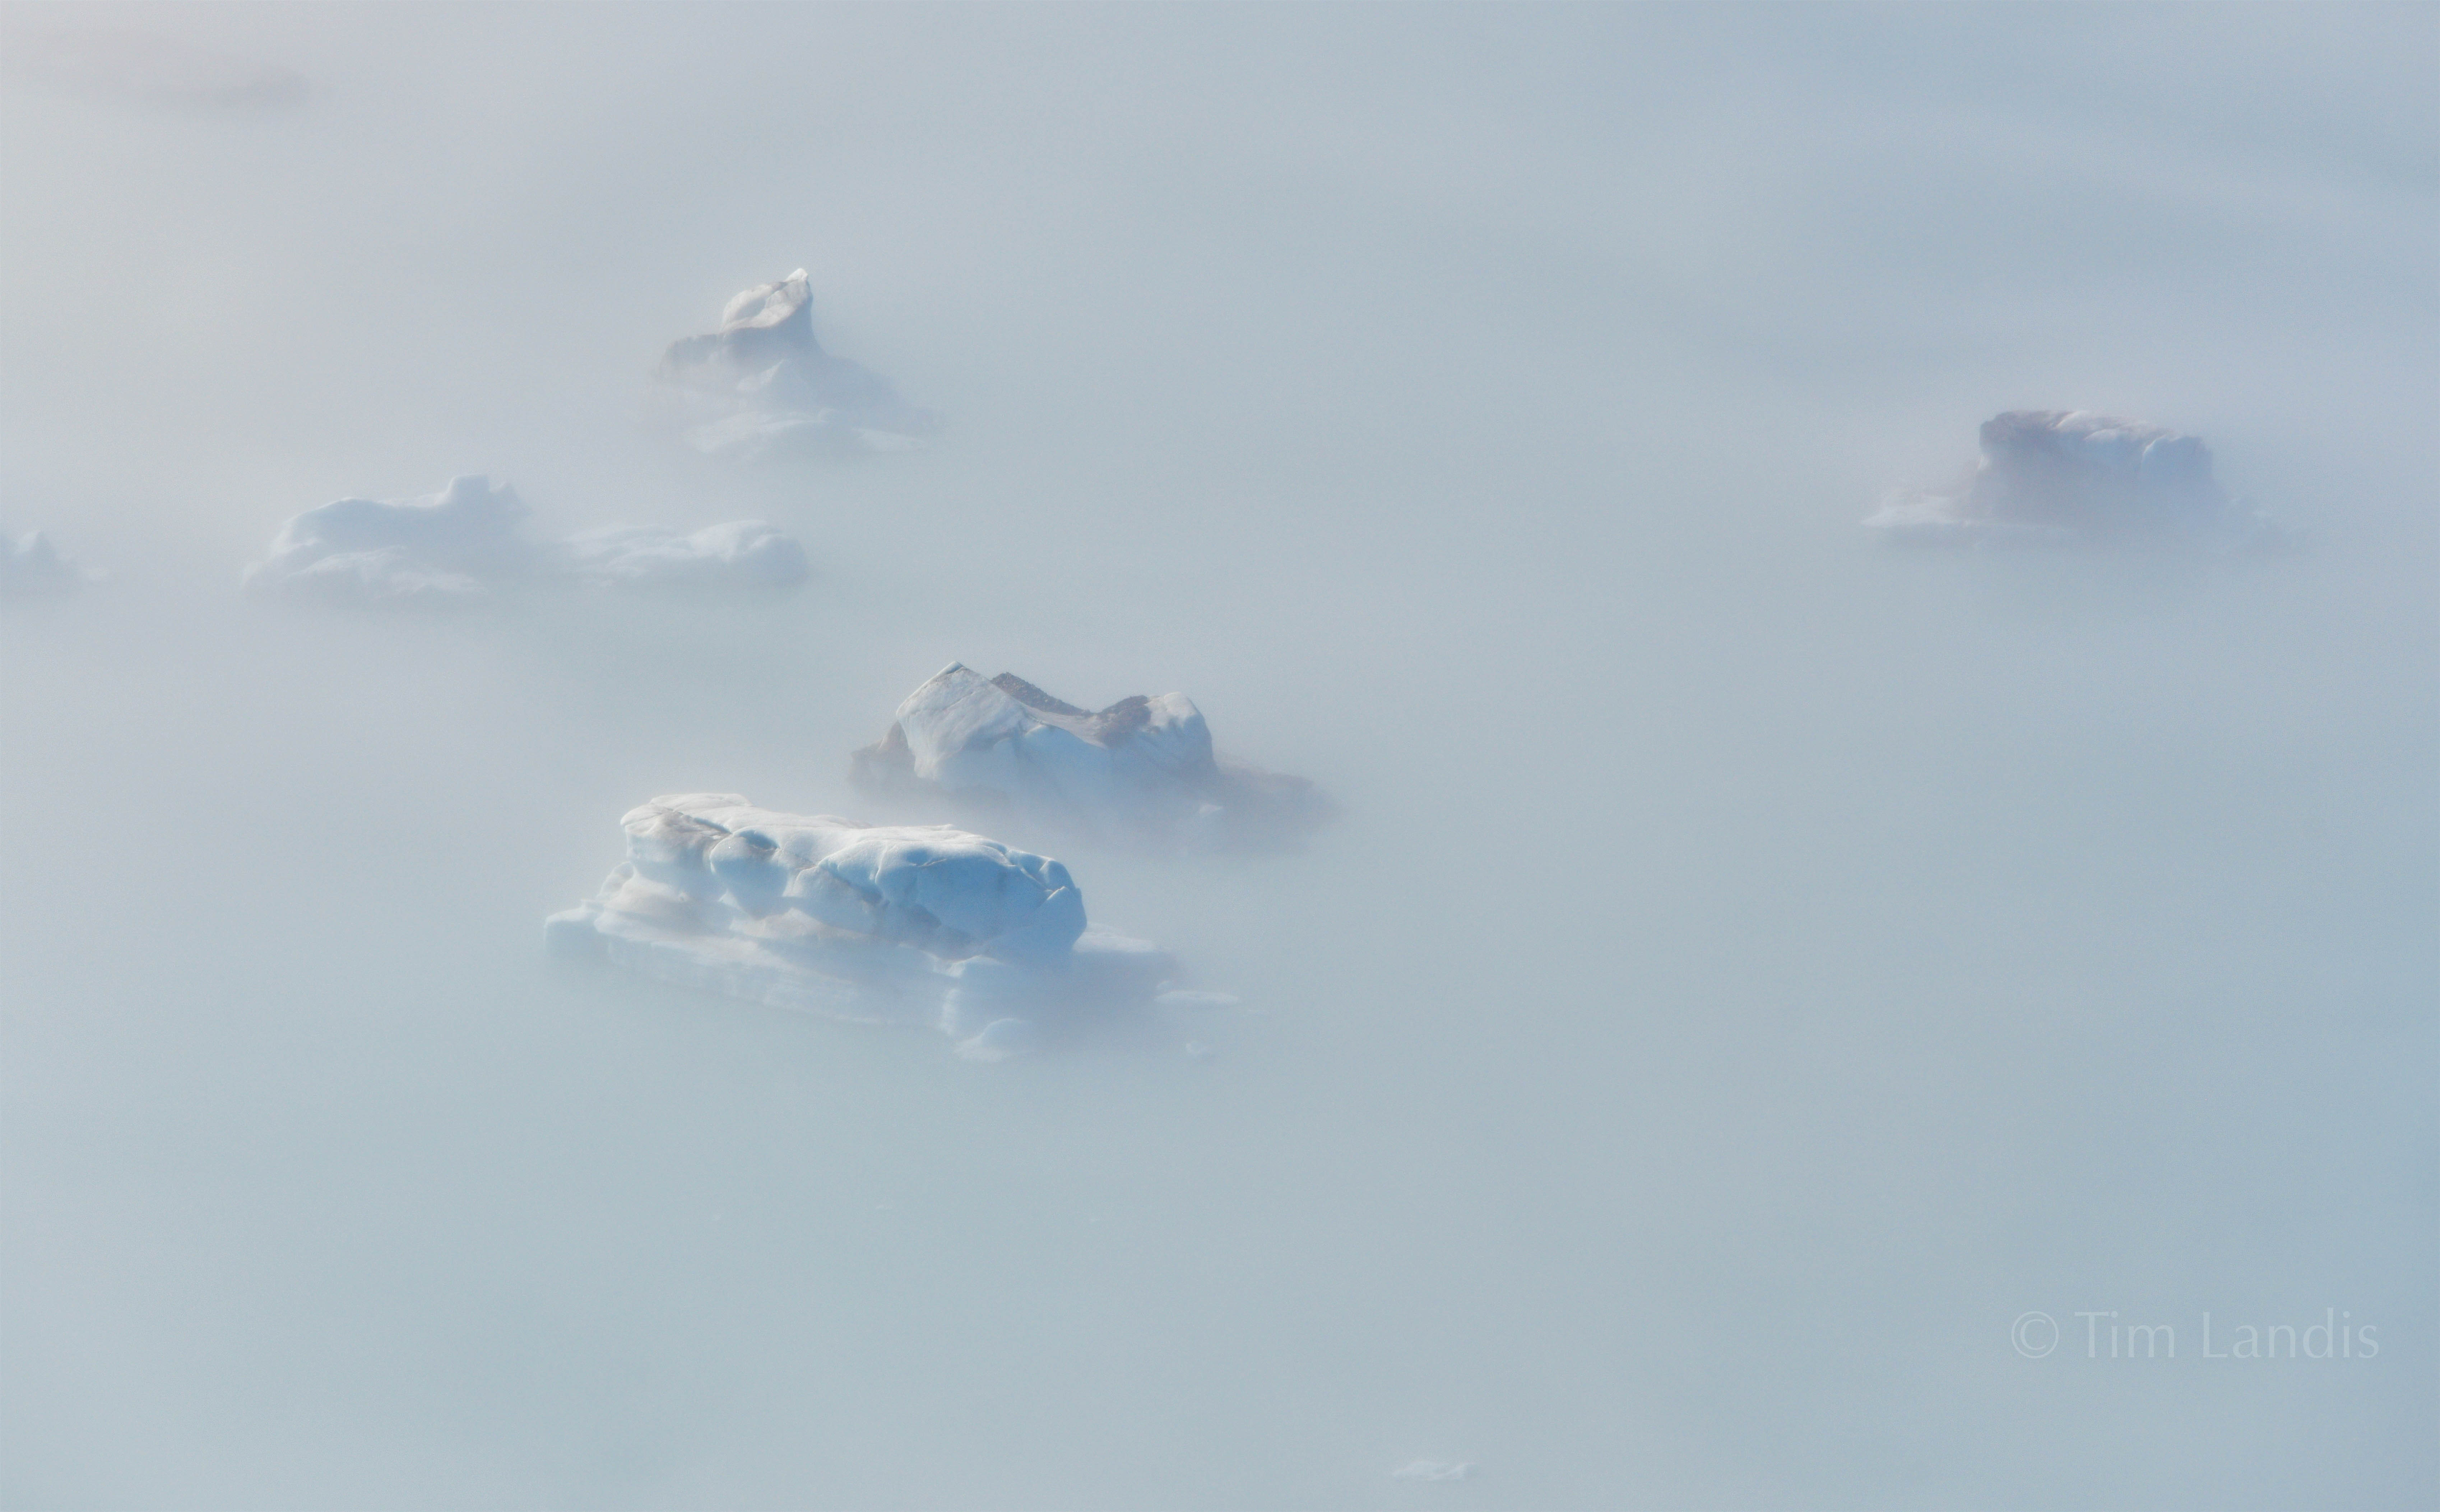 Alaska, icebergs in fog, photo